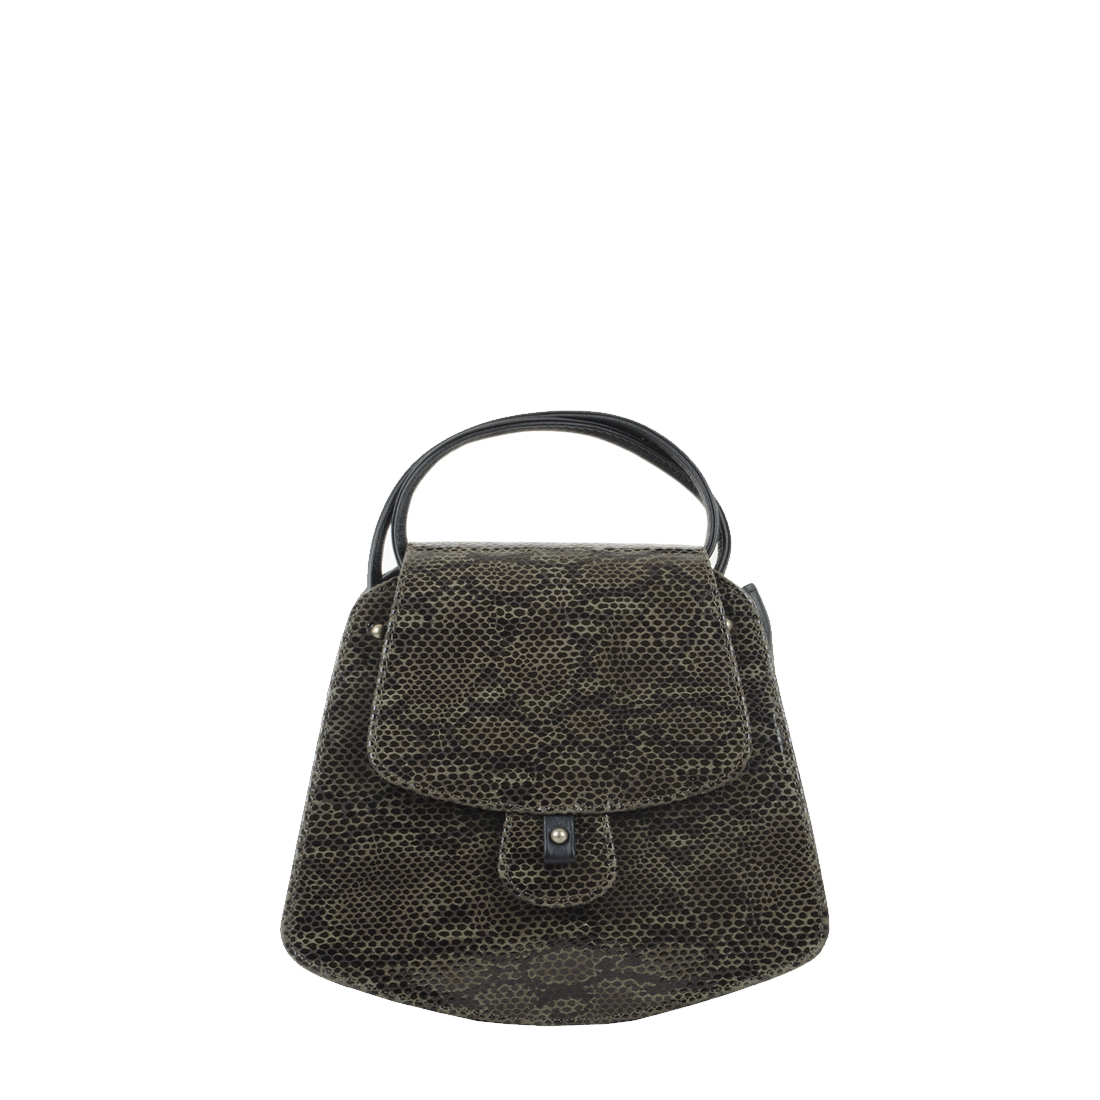 Clara Snakeskin olive Print Leather Shoulder Bag